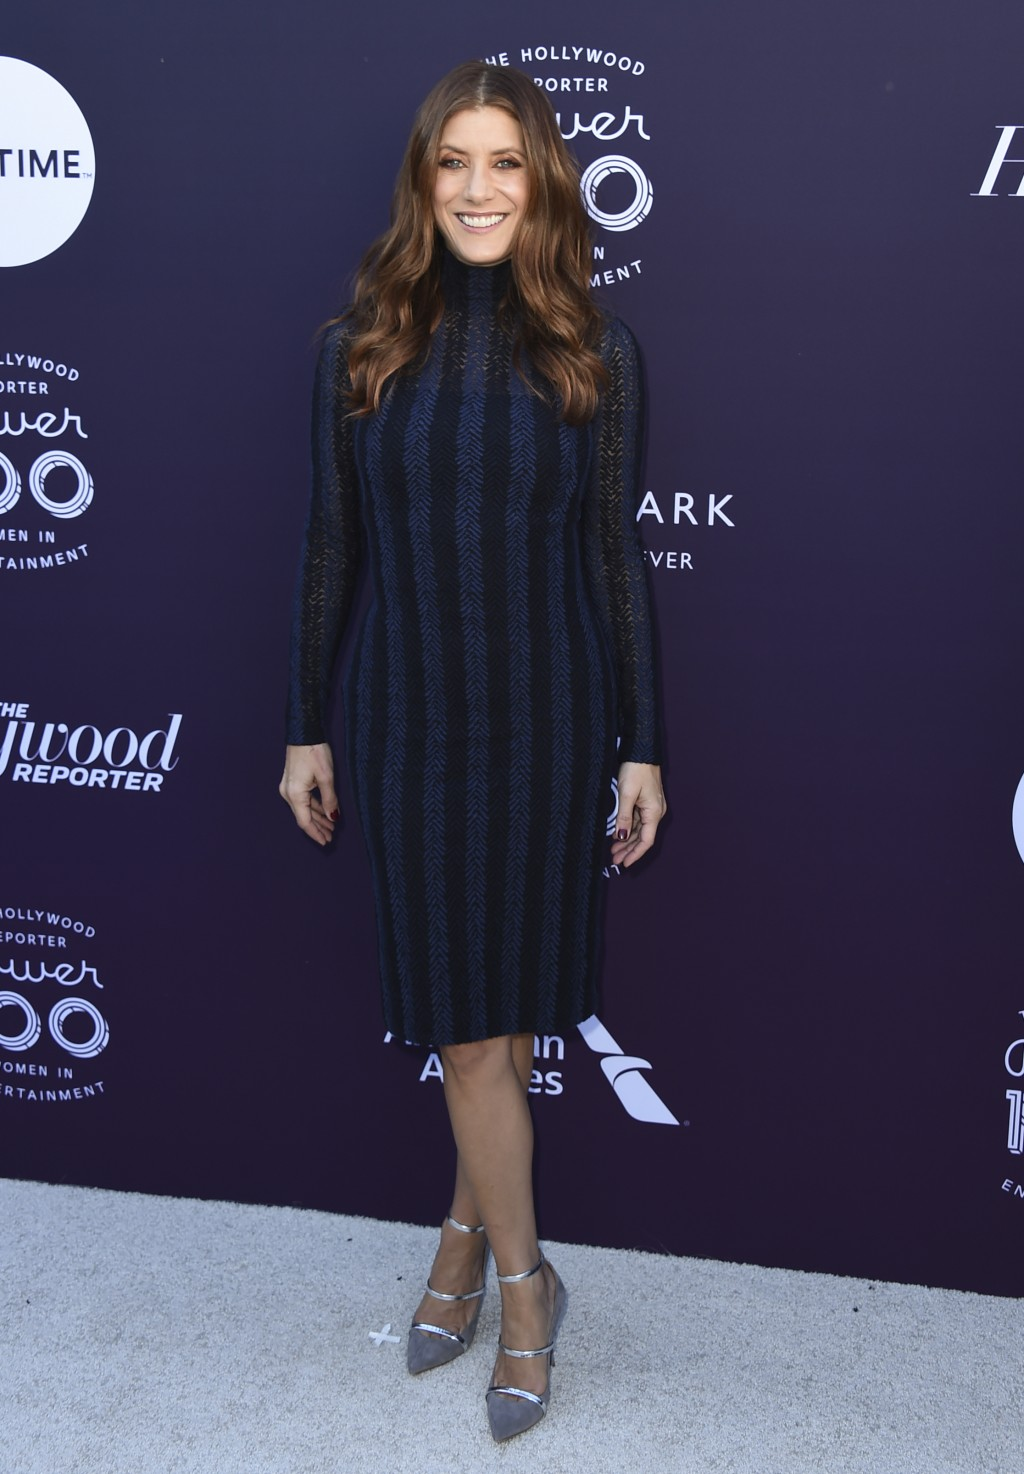 Kate Walsh arrives at The Hollywood Reporter's Women in Entertainment Breakfast at Milk Studios on Wednesday, Dec. 6, 2017, in Los Angeles. (Photo by